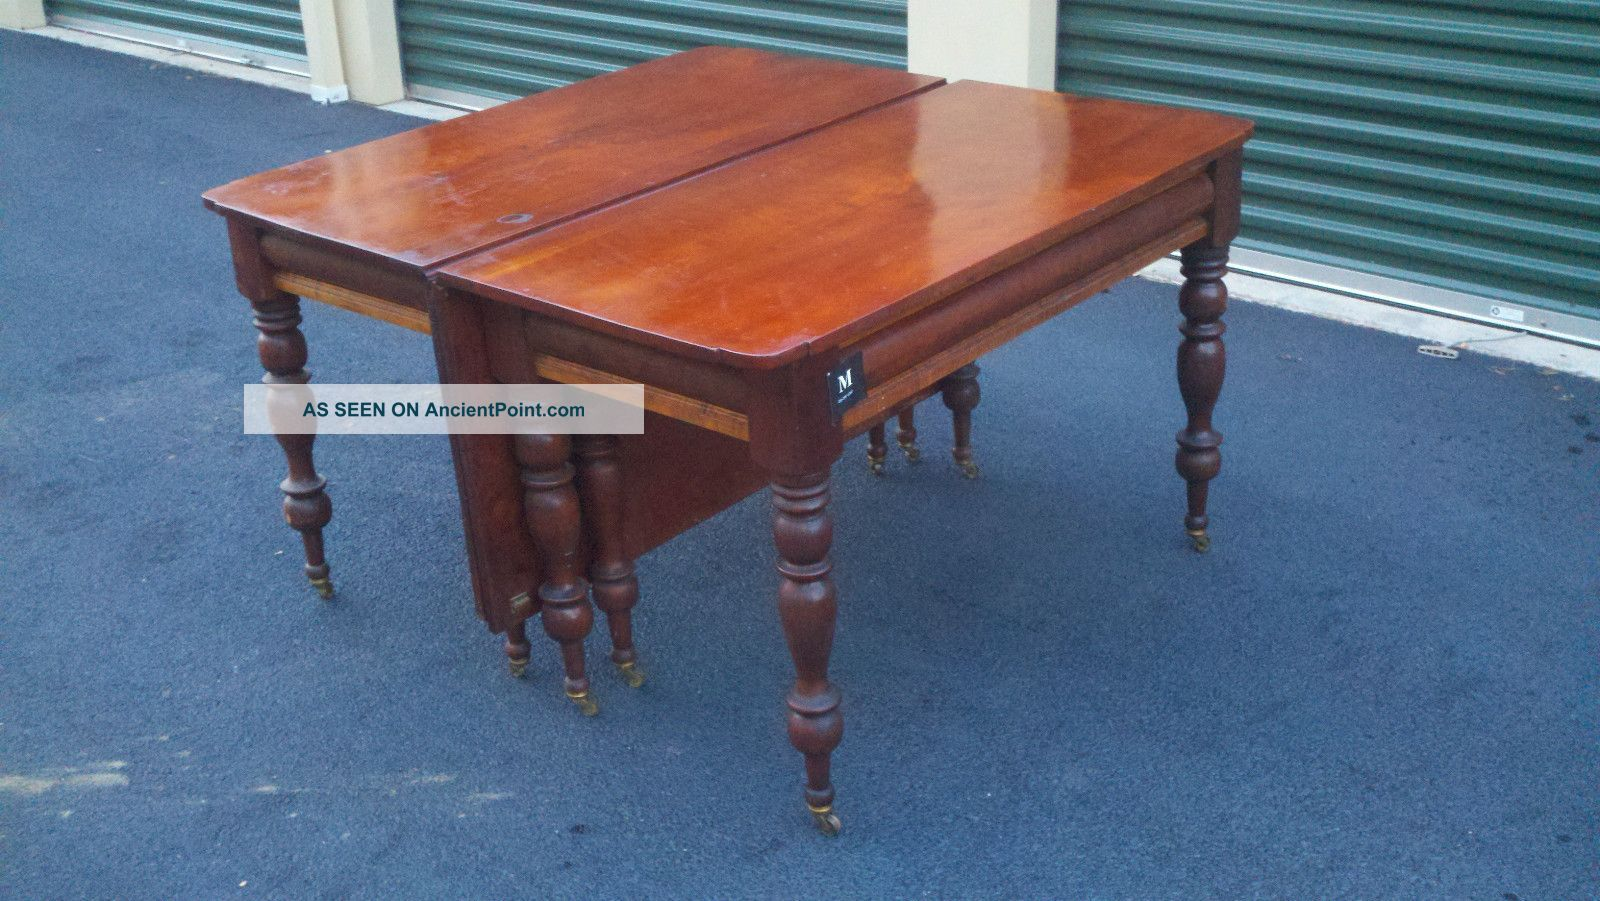 Early American Curley Maple And Black Cherry Banquet End Tables 1800-1899 photo